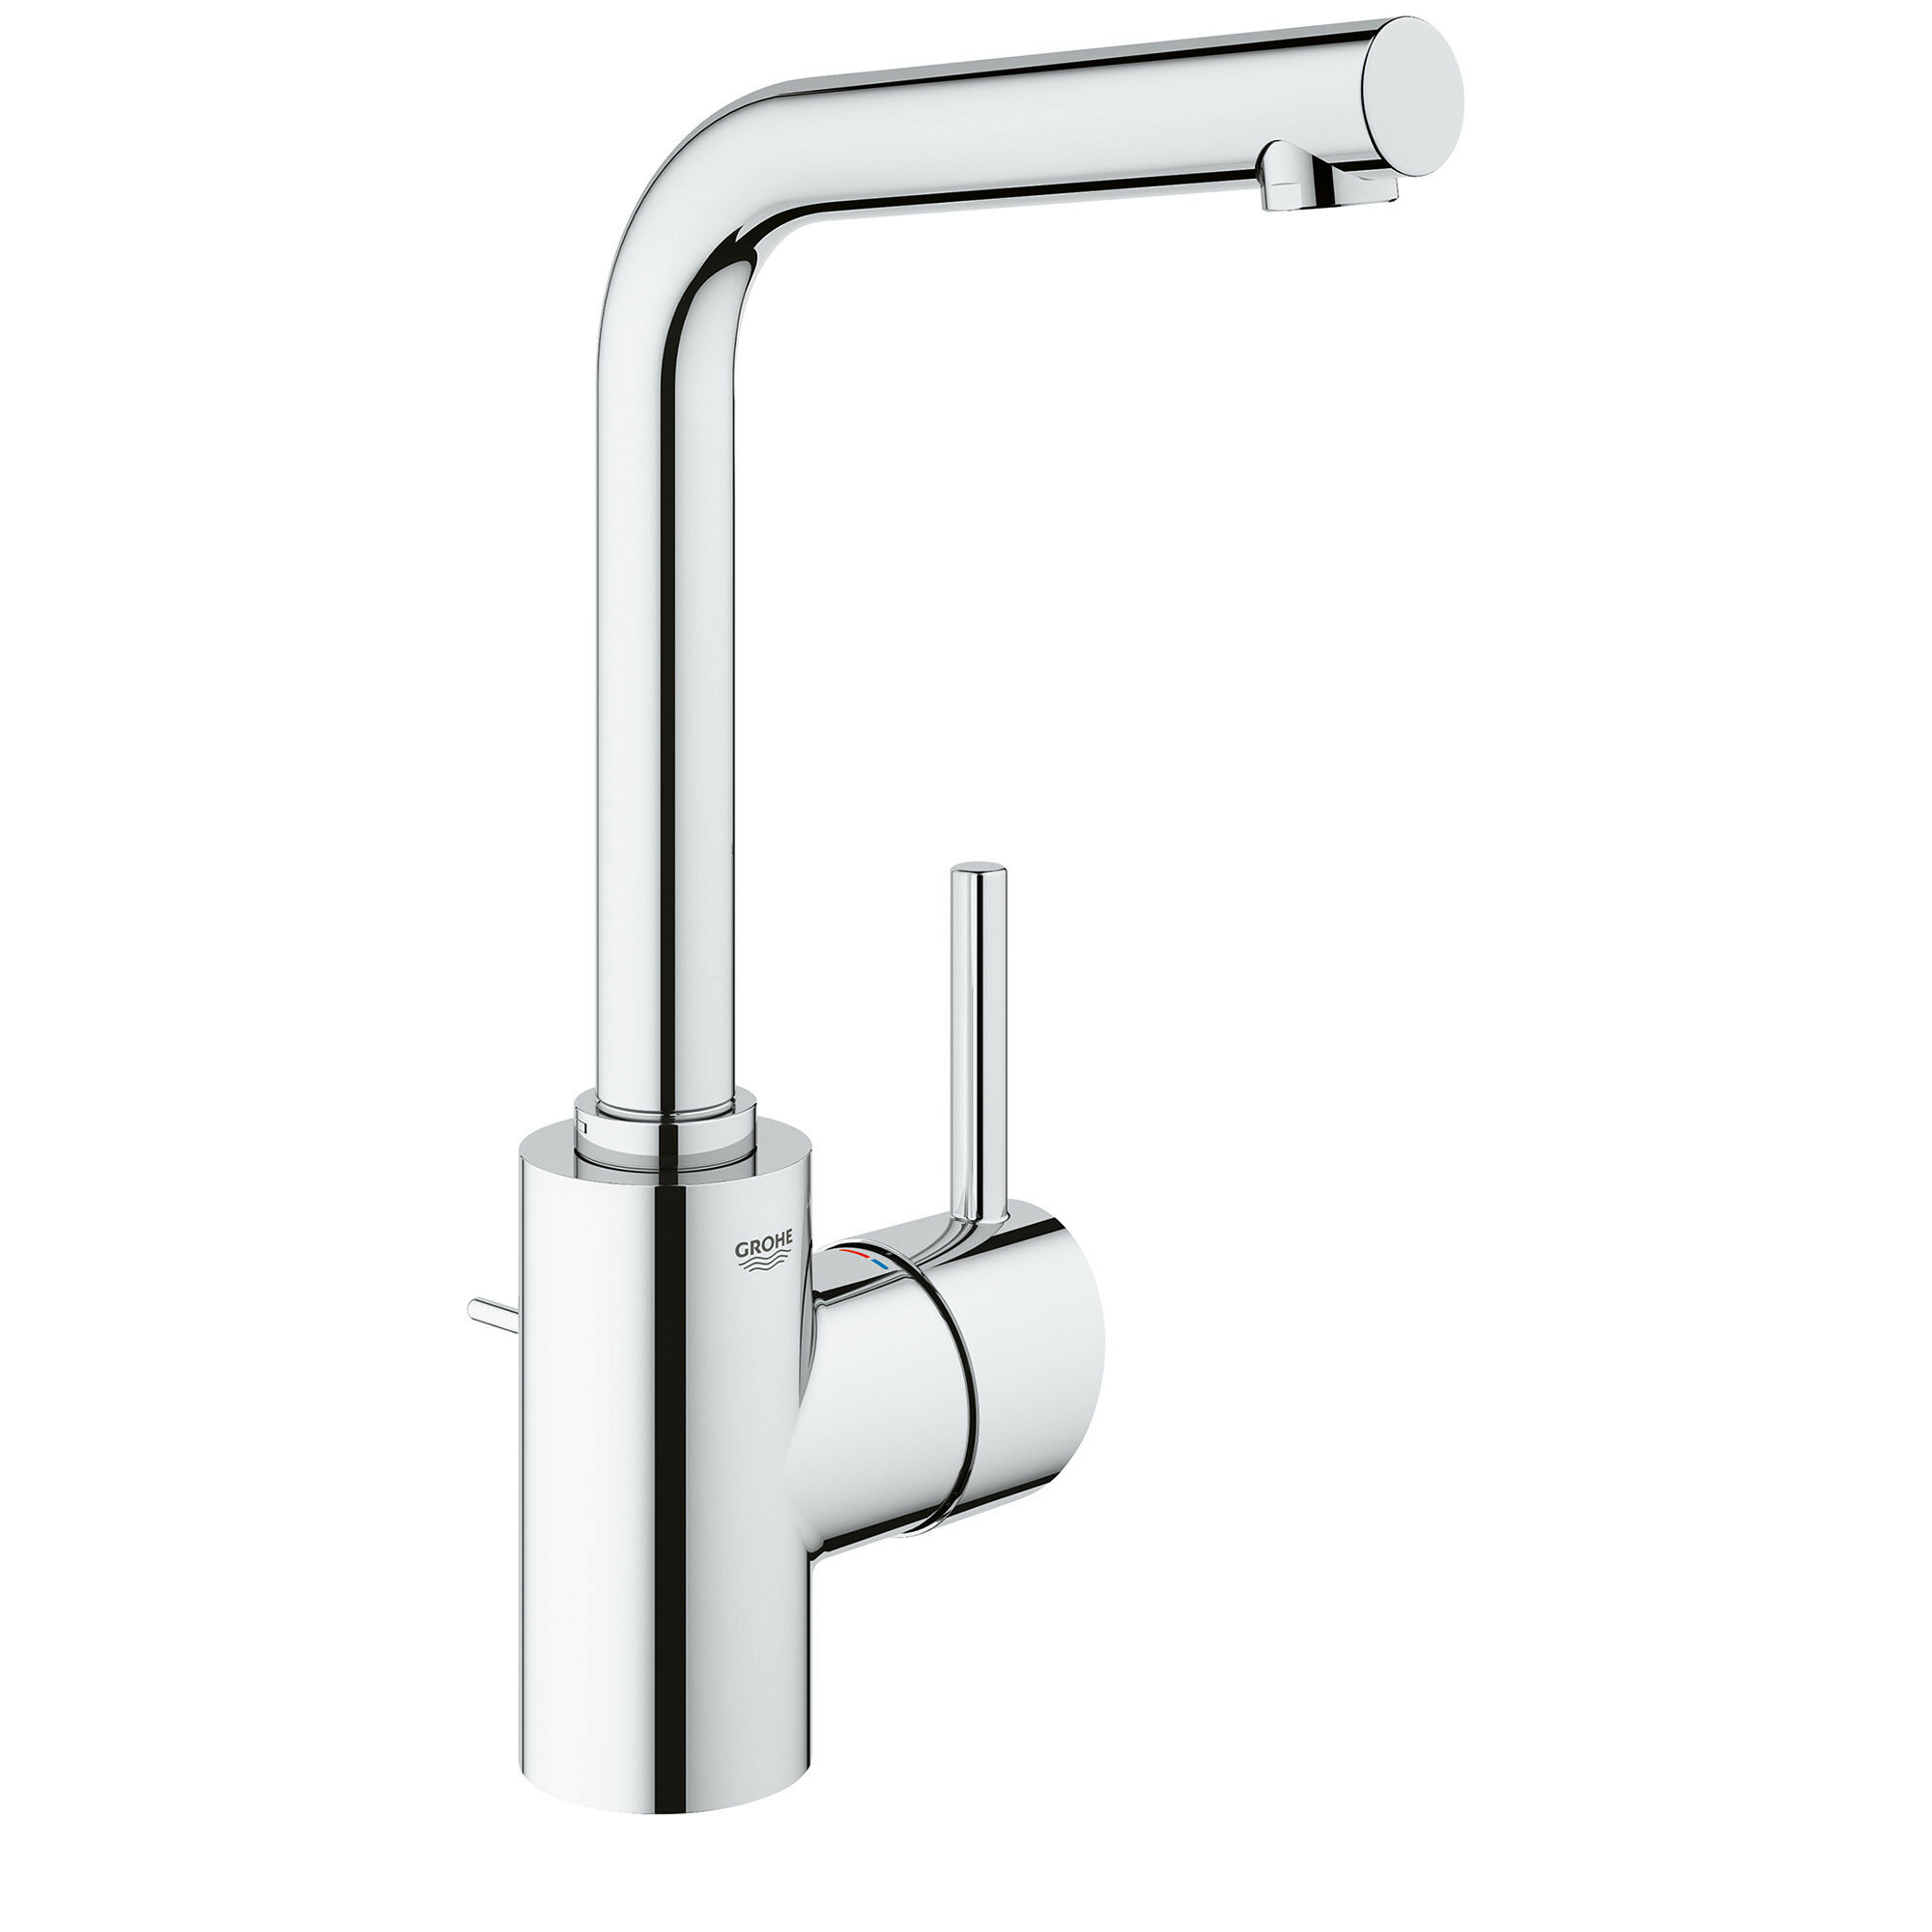 Grohe Concetto Single Hole Bathroom Faucet & Reviews | Wayfair